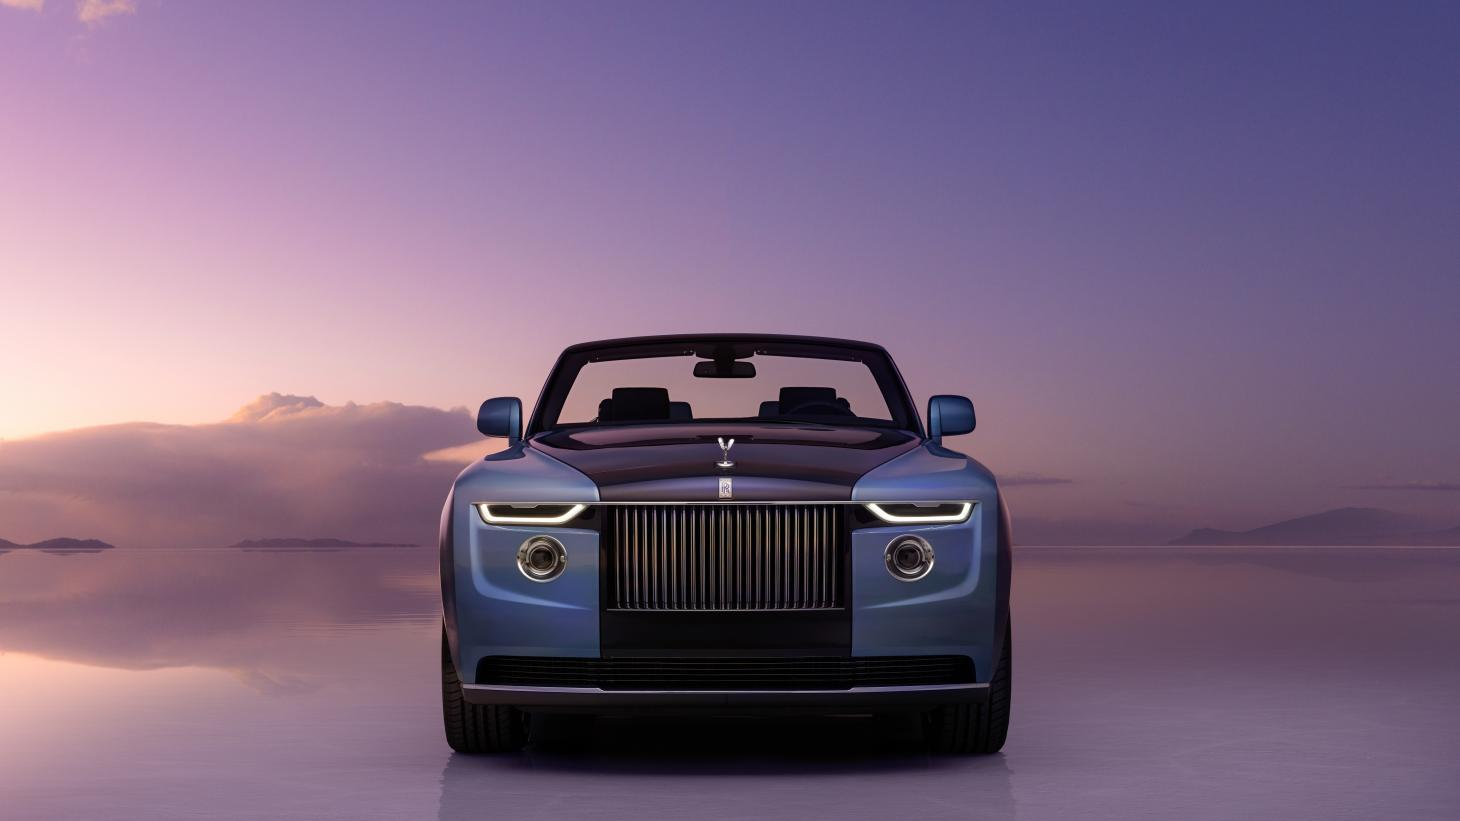 The front profile of the 2021 Rolls-Royce Boat Tail